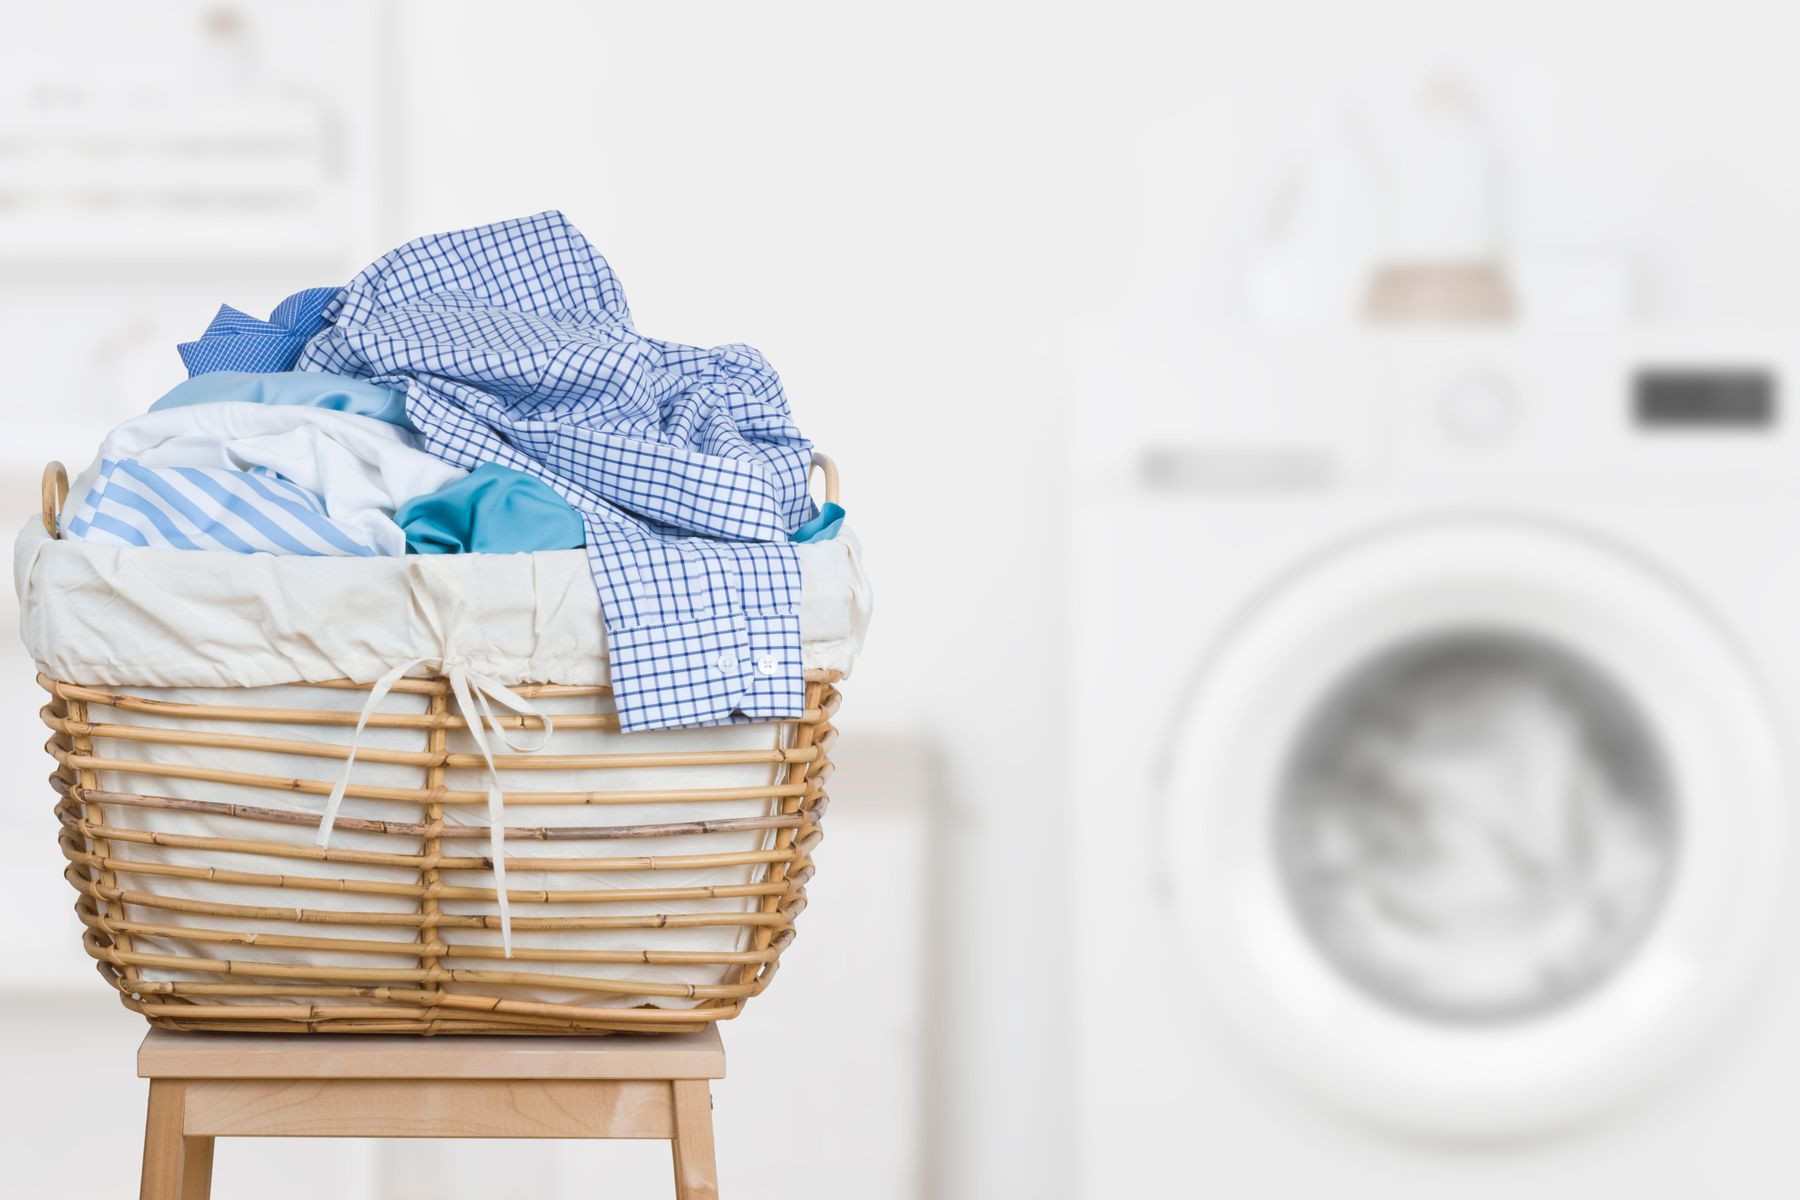 Washing clothes the right way to make them last longer